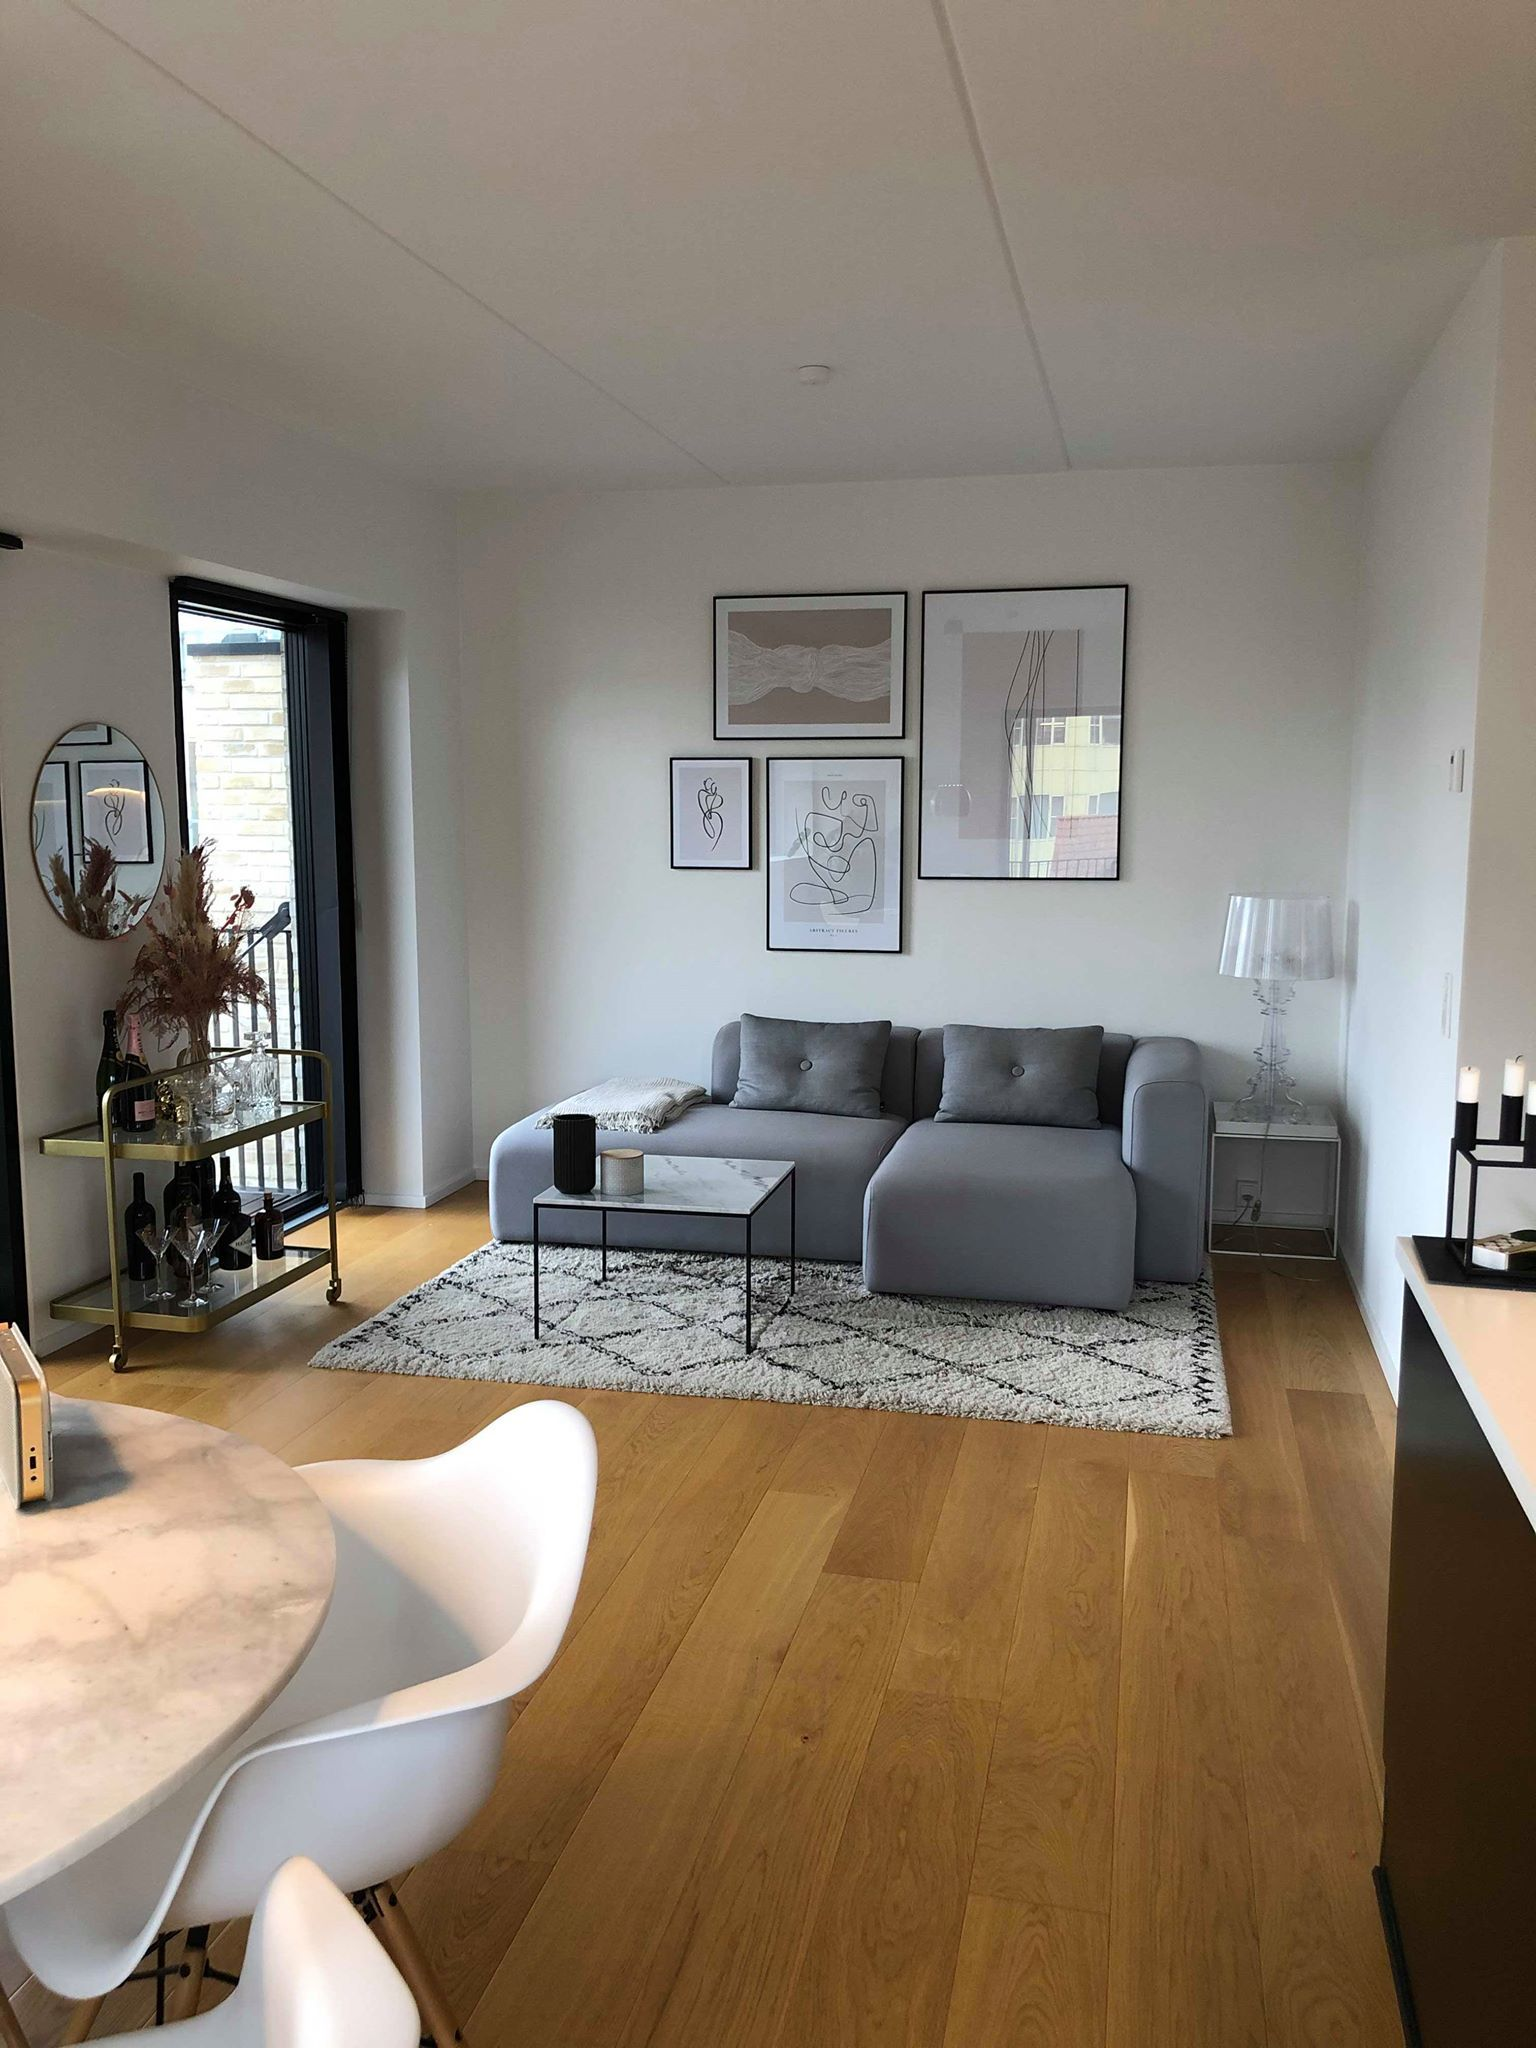 ROOM TO RENT AS SOON AS POSSIBLE, LAST PR. APRIL 1